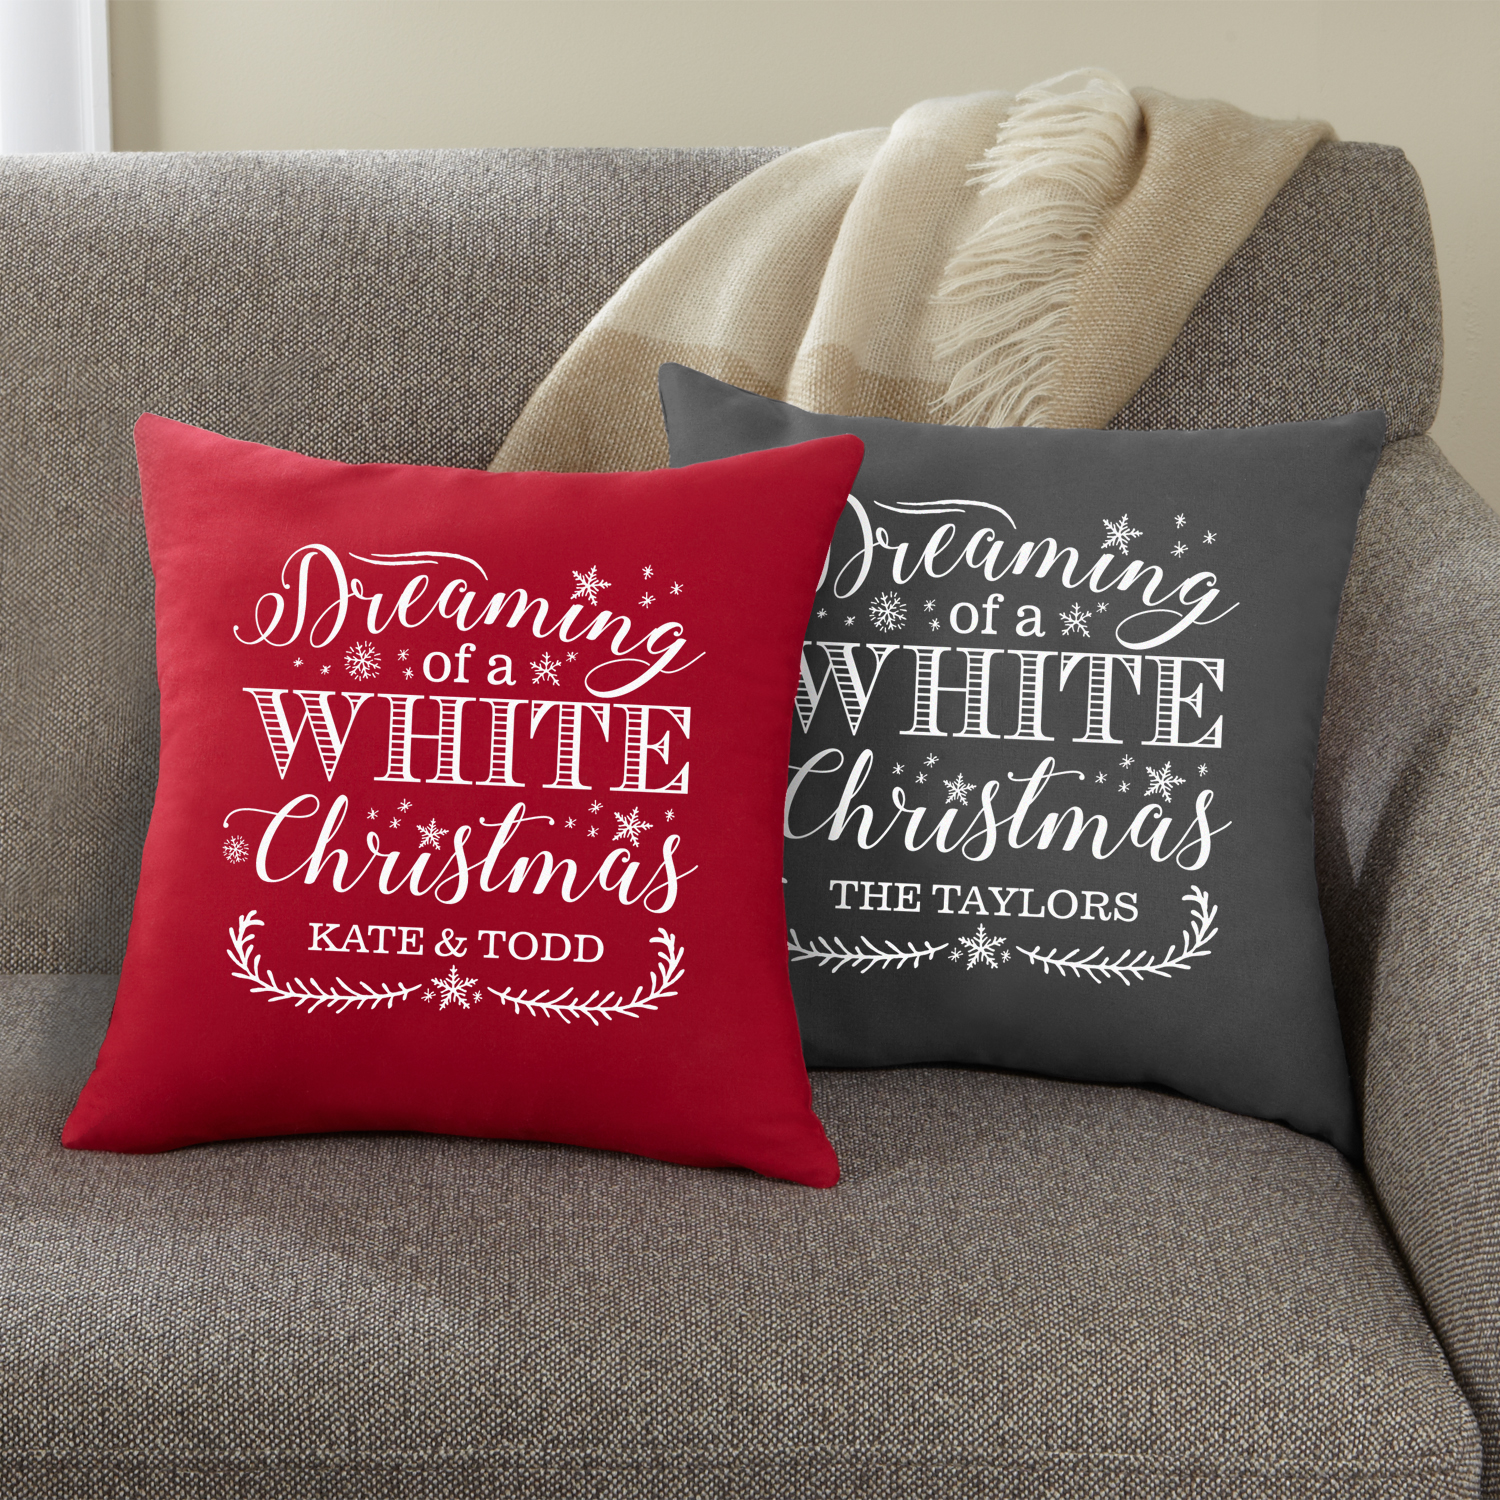 Personalized Personalized Dreaming of a White Christmas Throw Pillow - Red